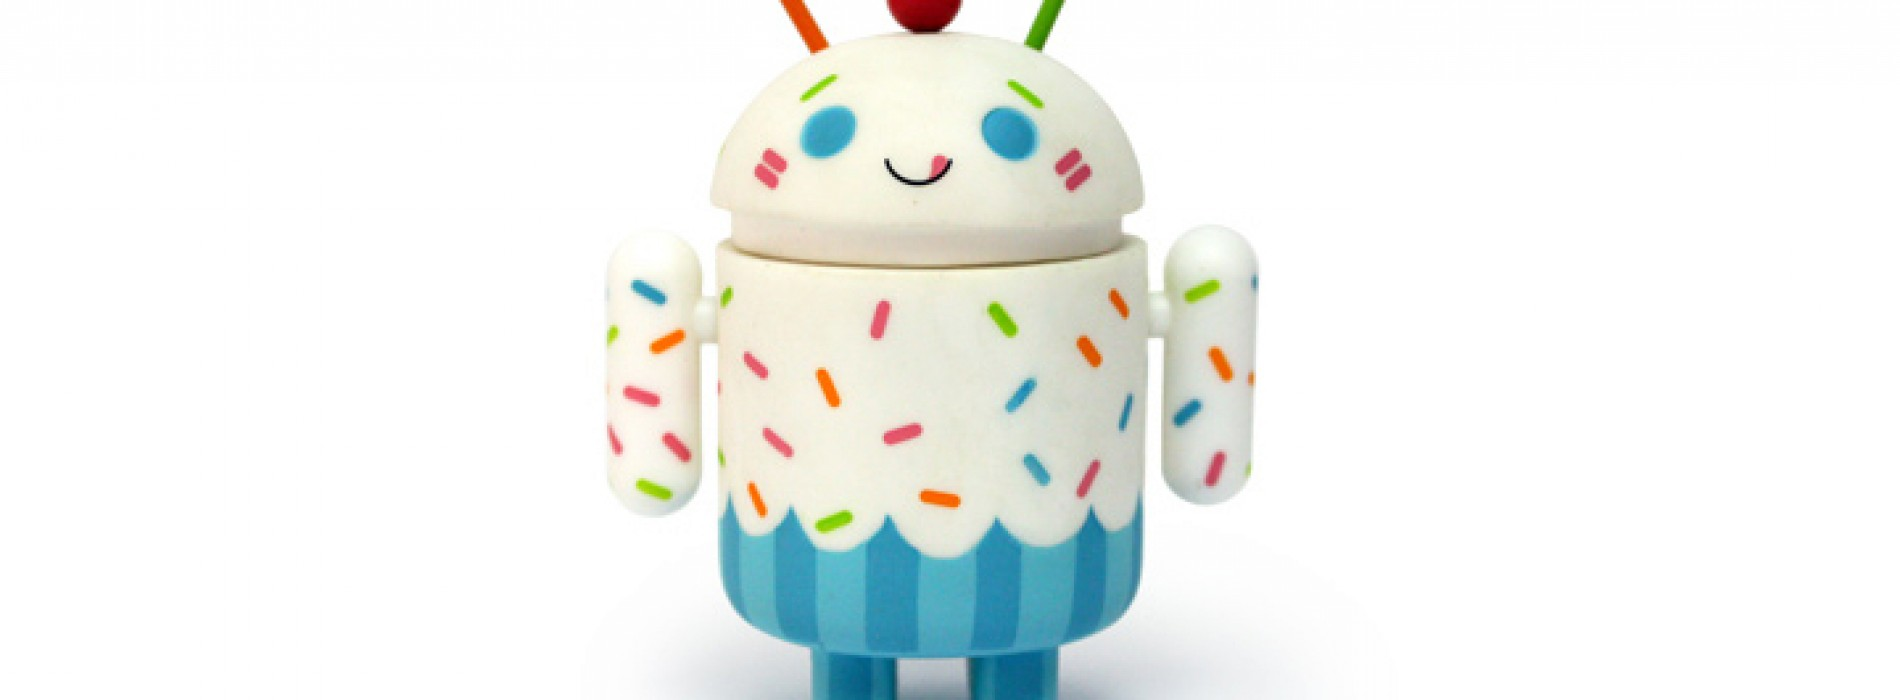 Happy 6th anniversary to Android and AndroidGuys